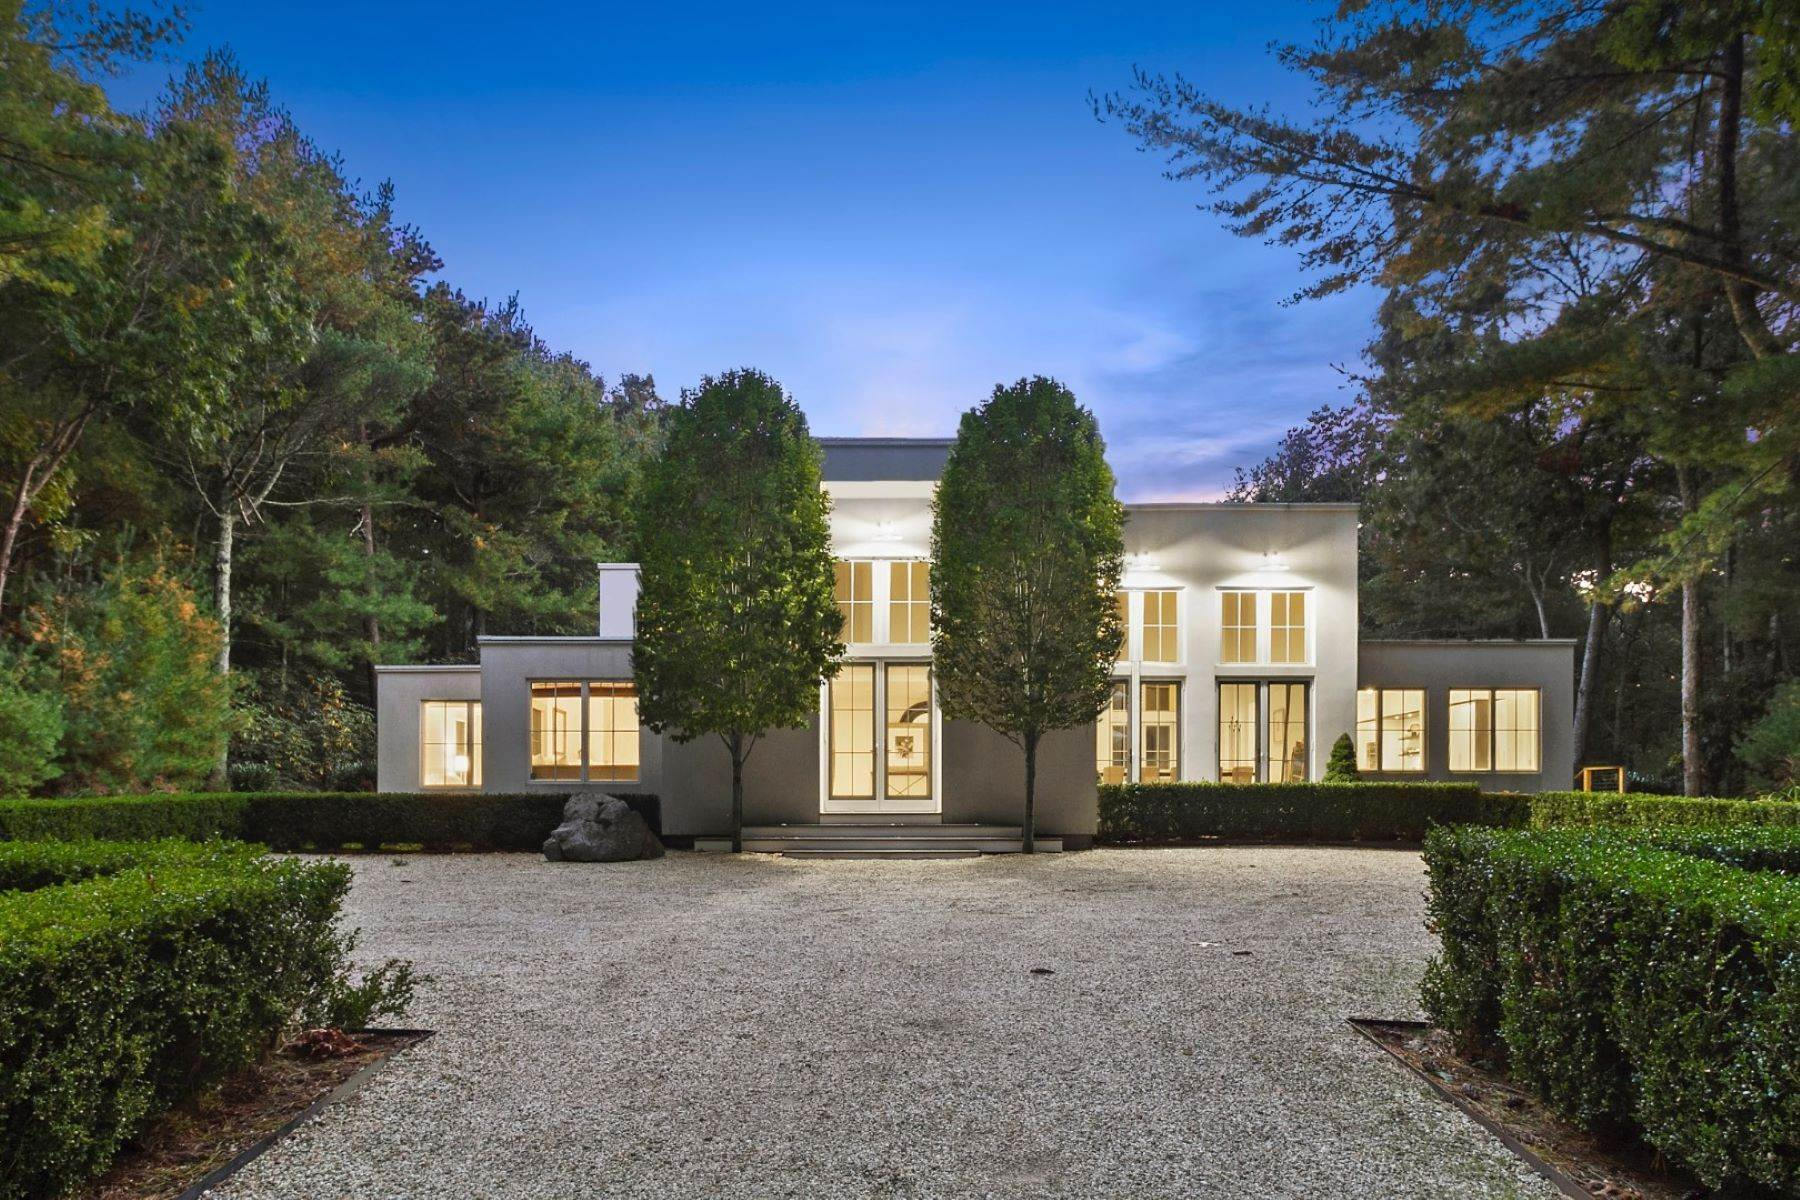 Other Residential Homes at Luxury on Prestigious Bull Path 46 Bull Path East Hampton, New York 11937 United States